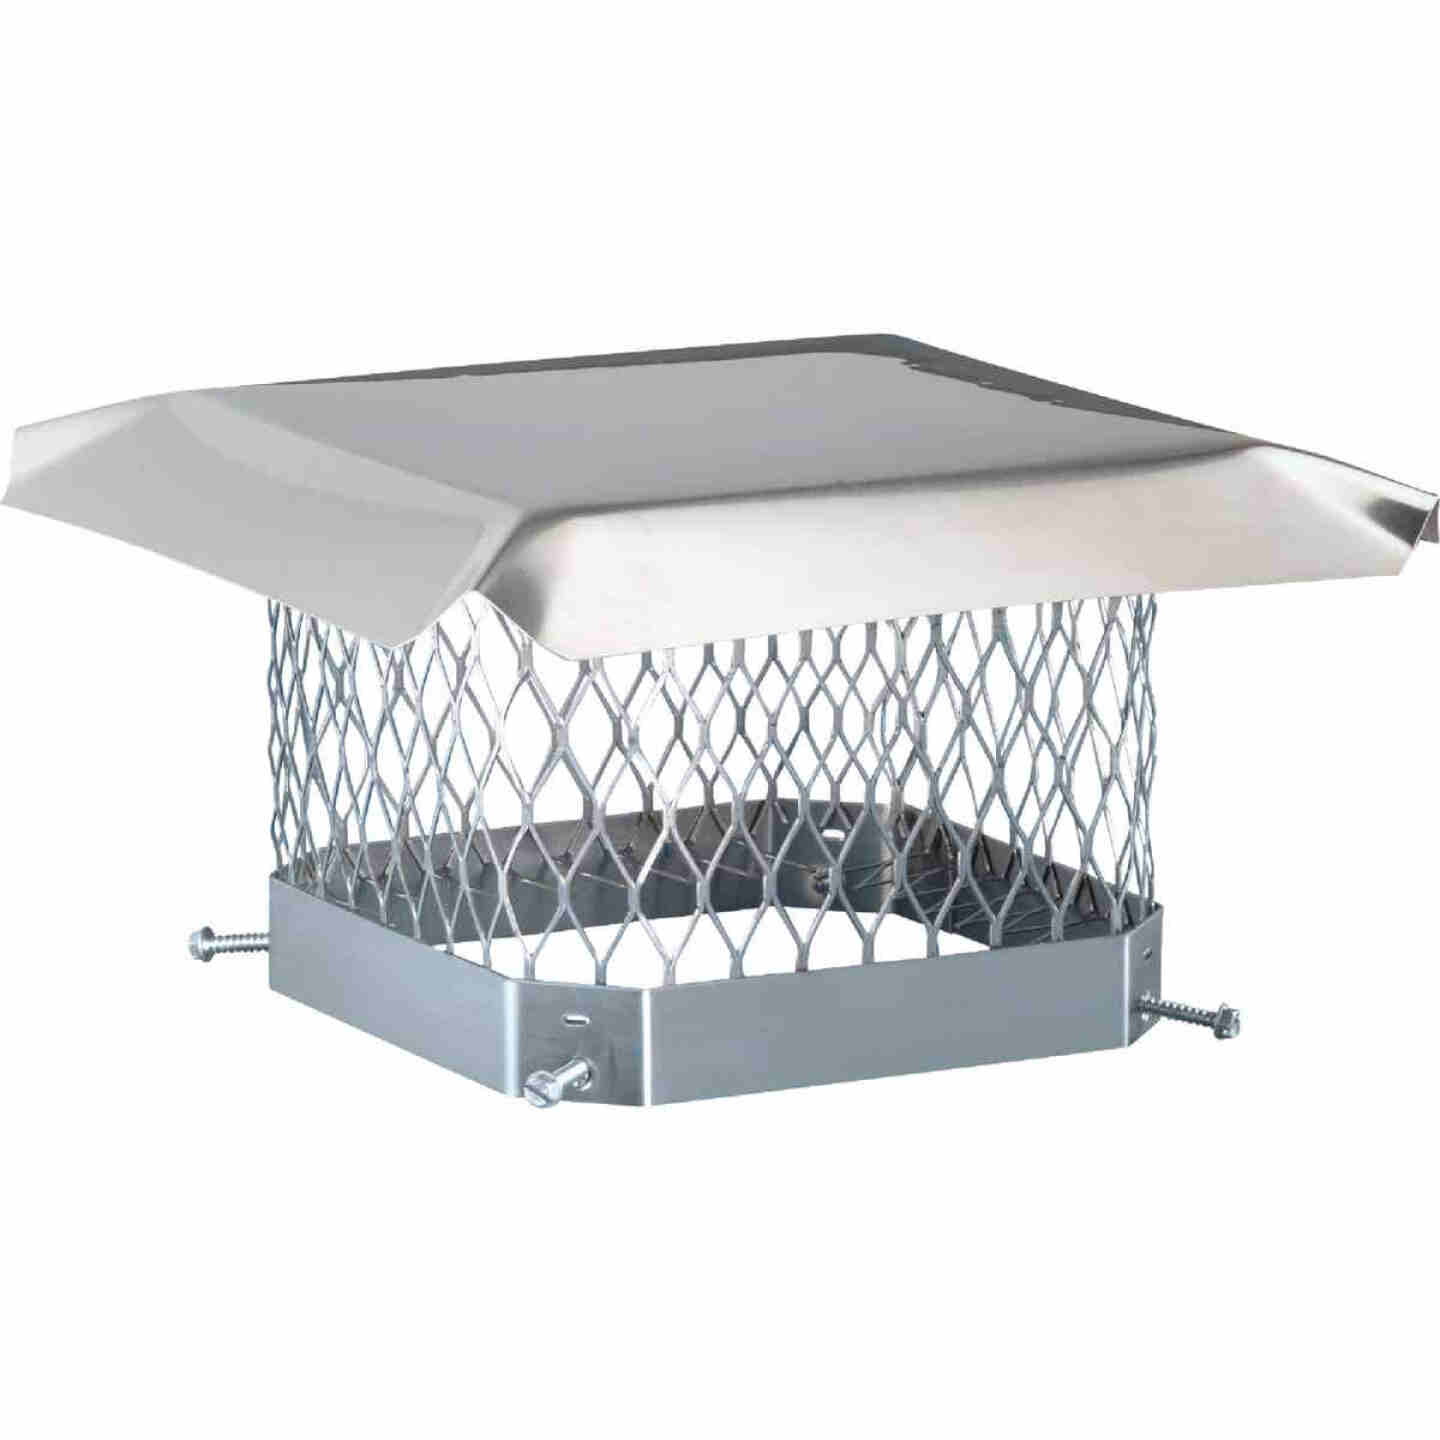 Shelter 13 In. x 13 In. Stainless Steel Single Flue Chimney Cap Image 1